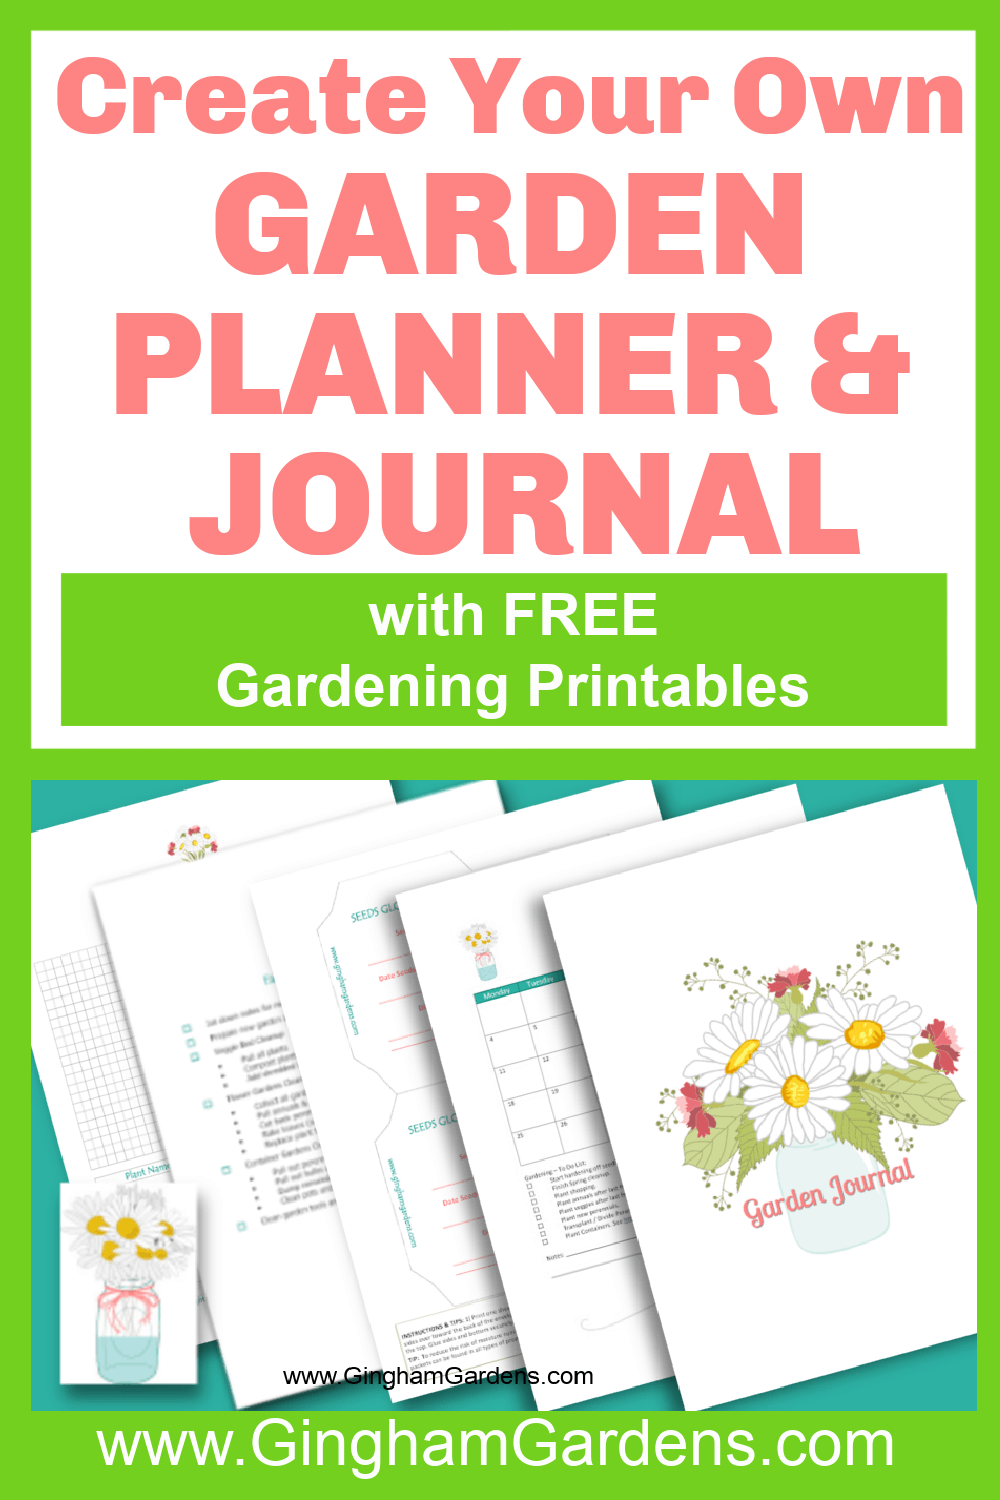 Image of Garden Journal with text overlay Create your own garden planner and journal with free gardening printables